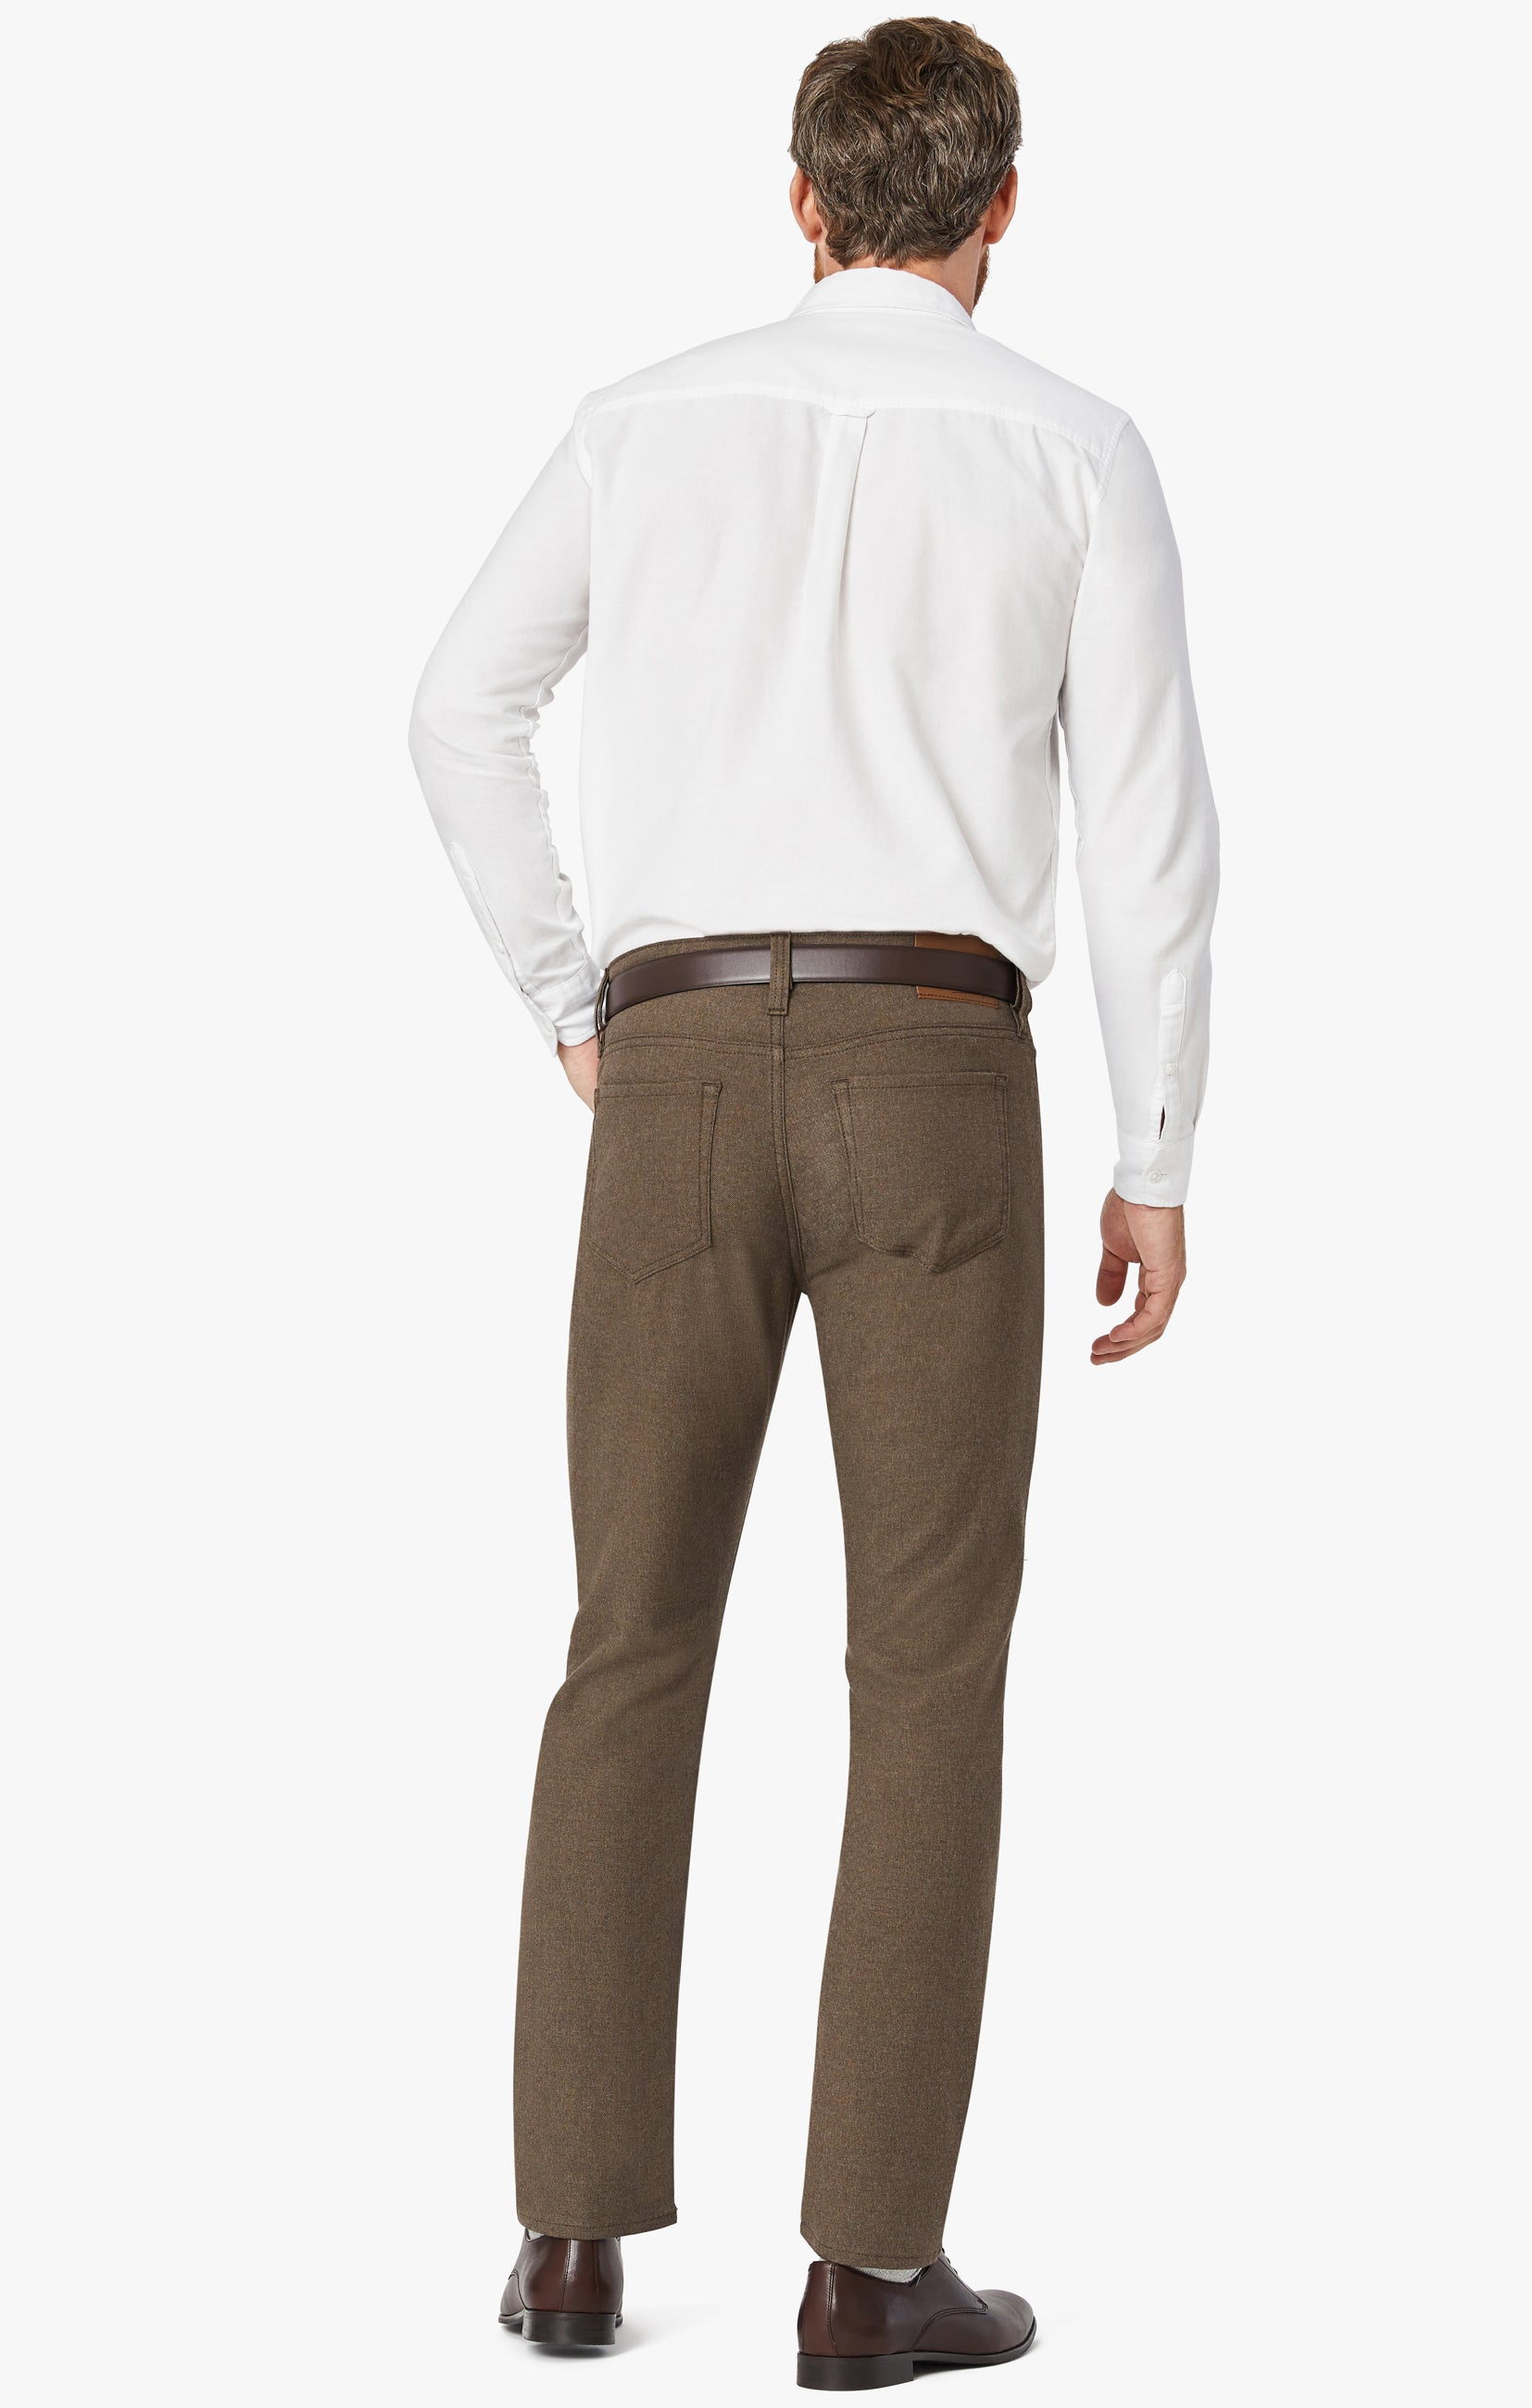 Courage Straight Leg Pants In Mocha Supreme Image 7